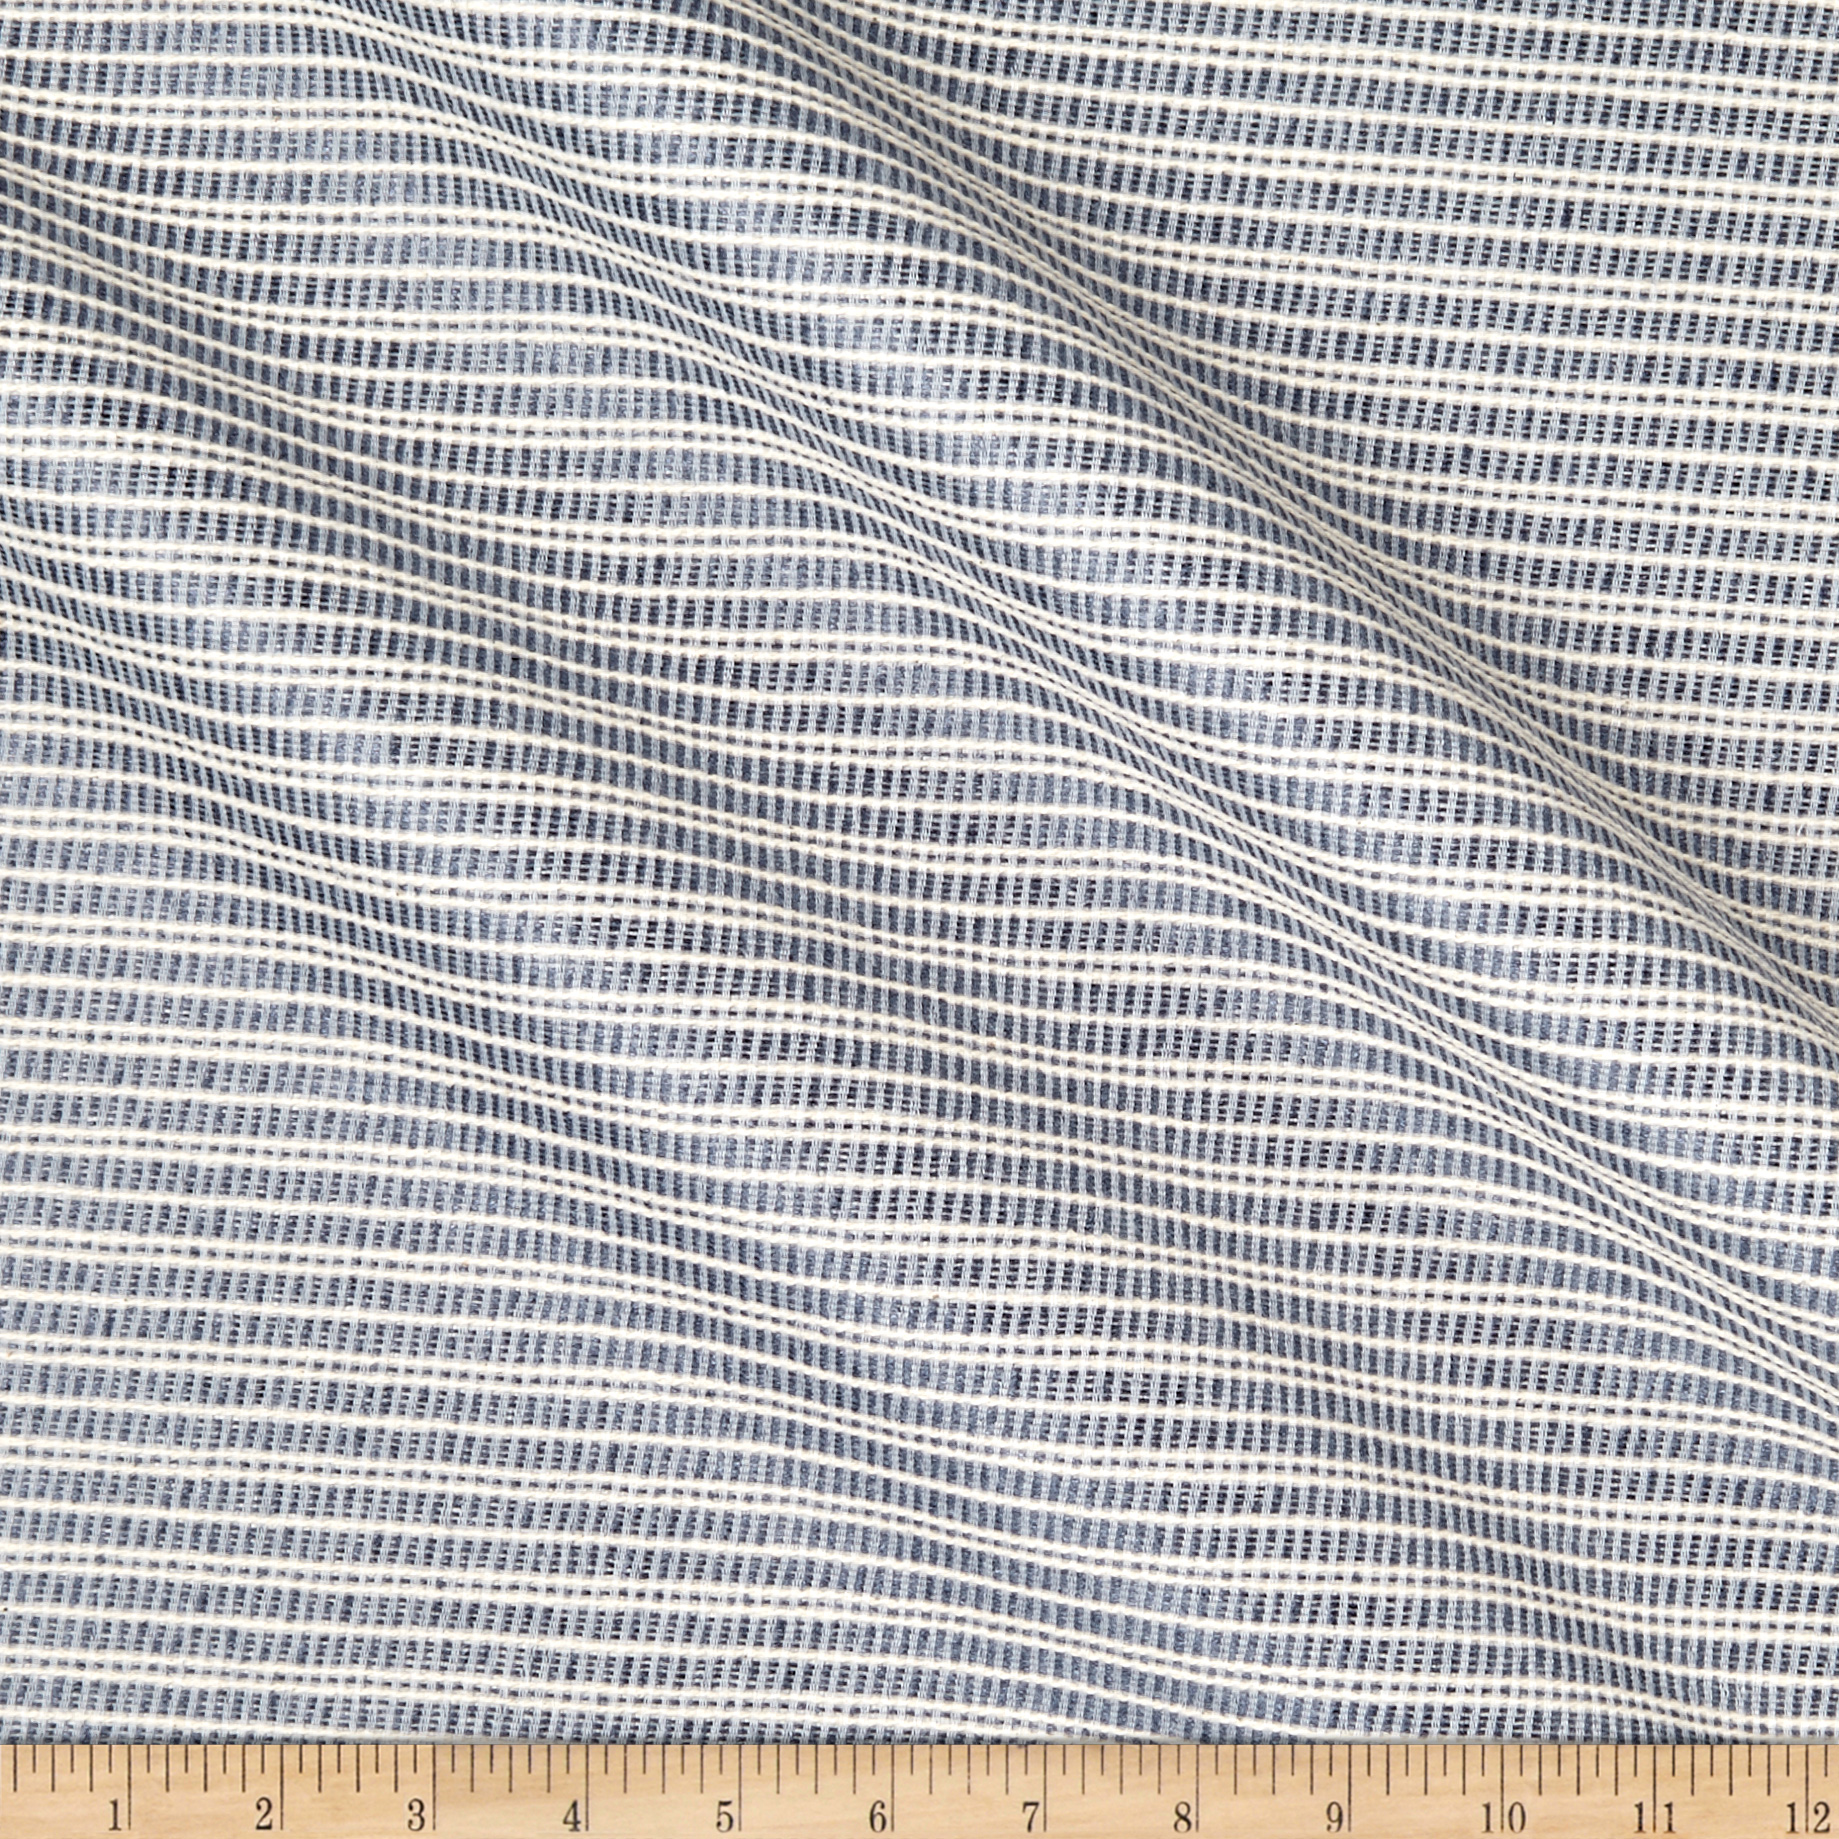 Magnolia Home Fashions Tybee Upholstery Denim Fabric